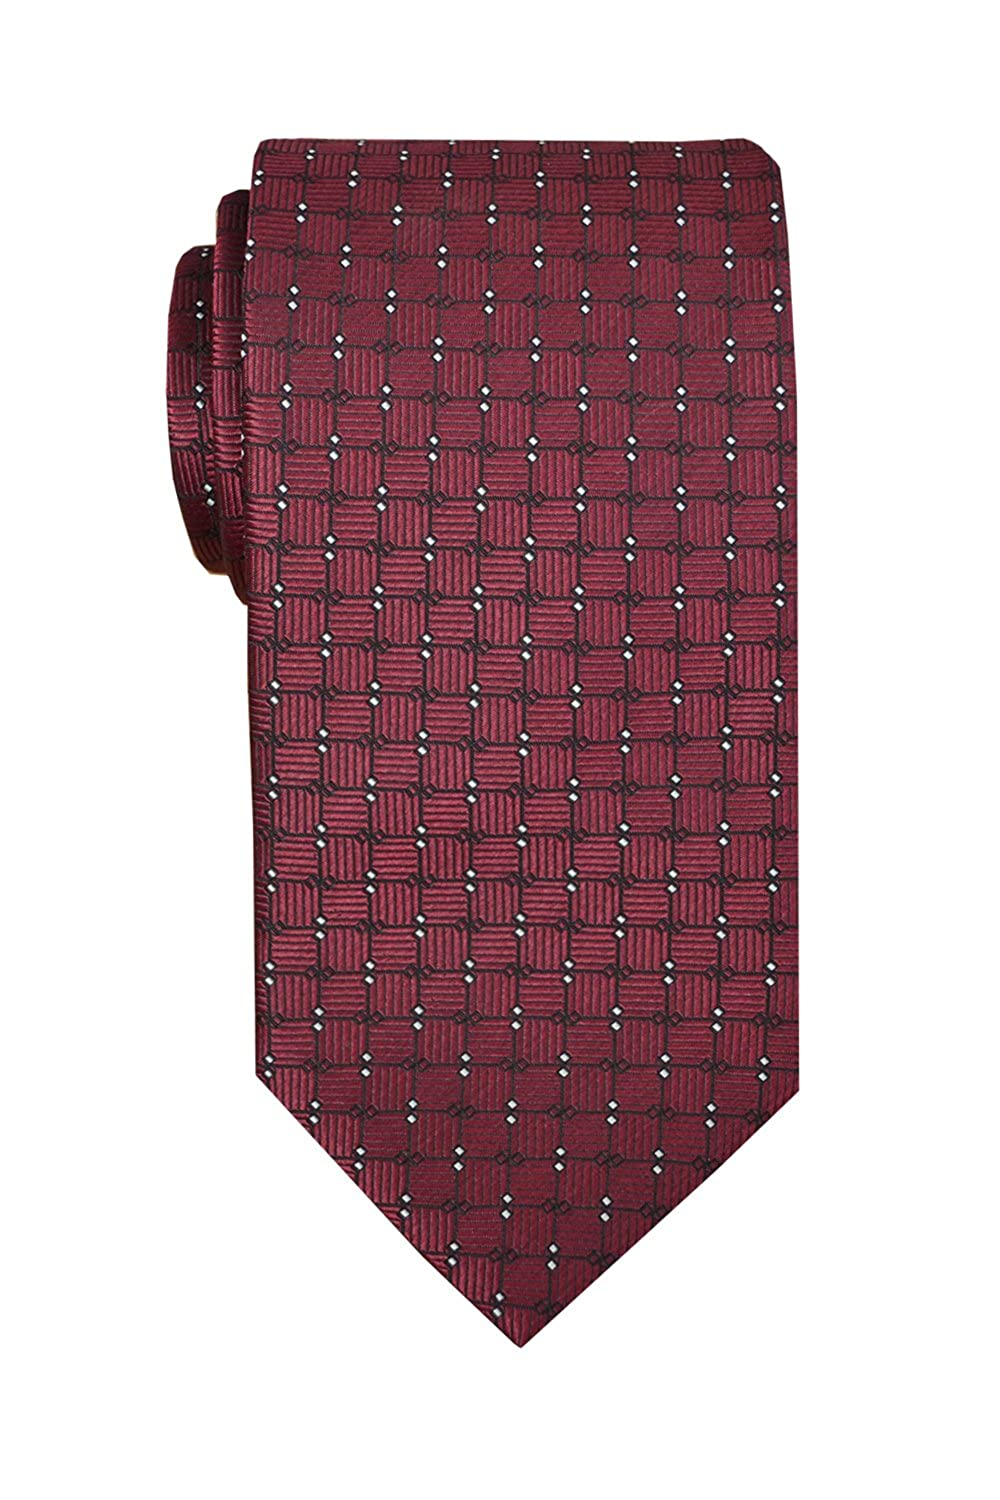 Silk 3,34 Width Remo Sartori Made in Italy Mens Burgundy Pattern Necktie